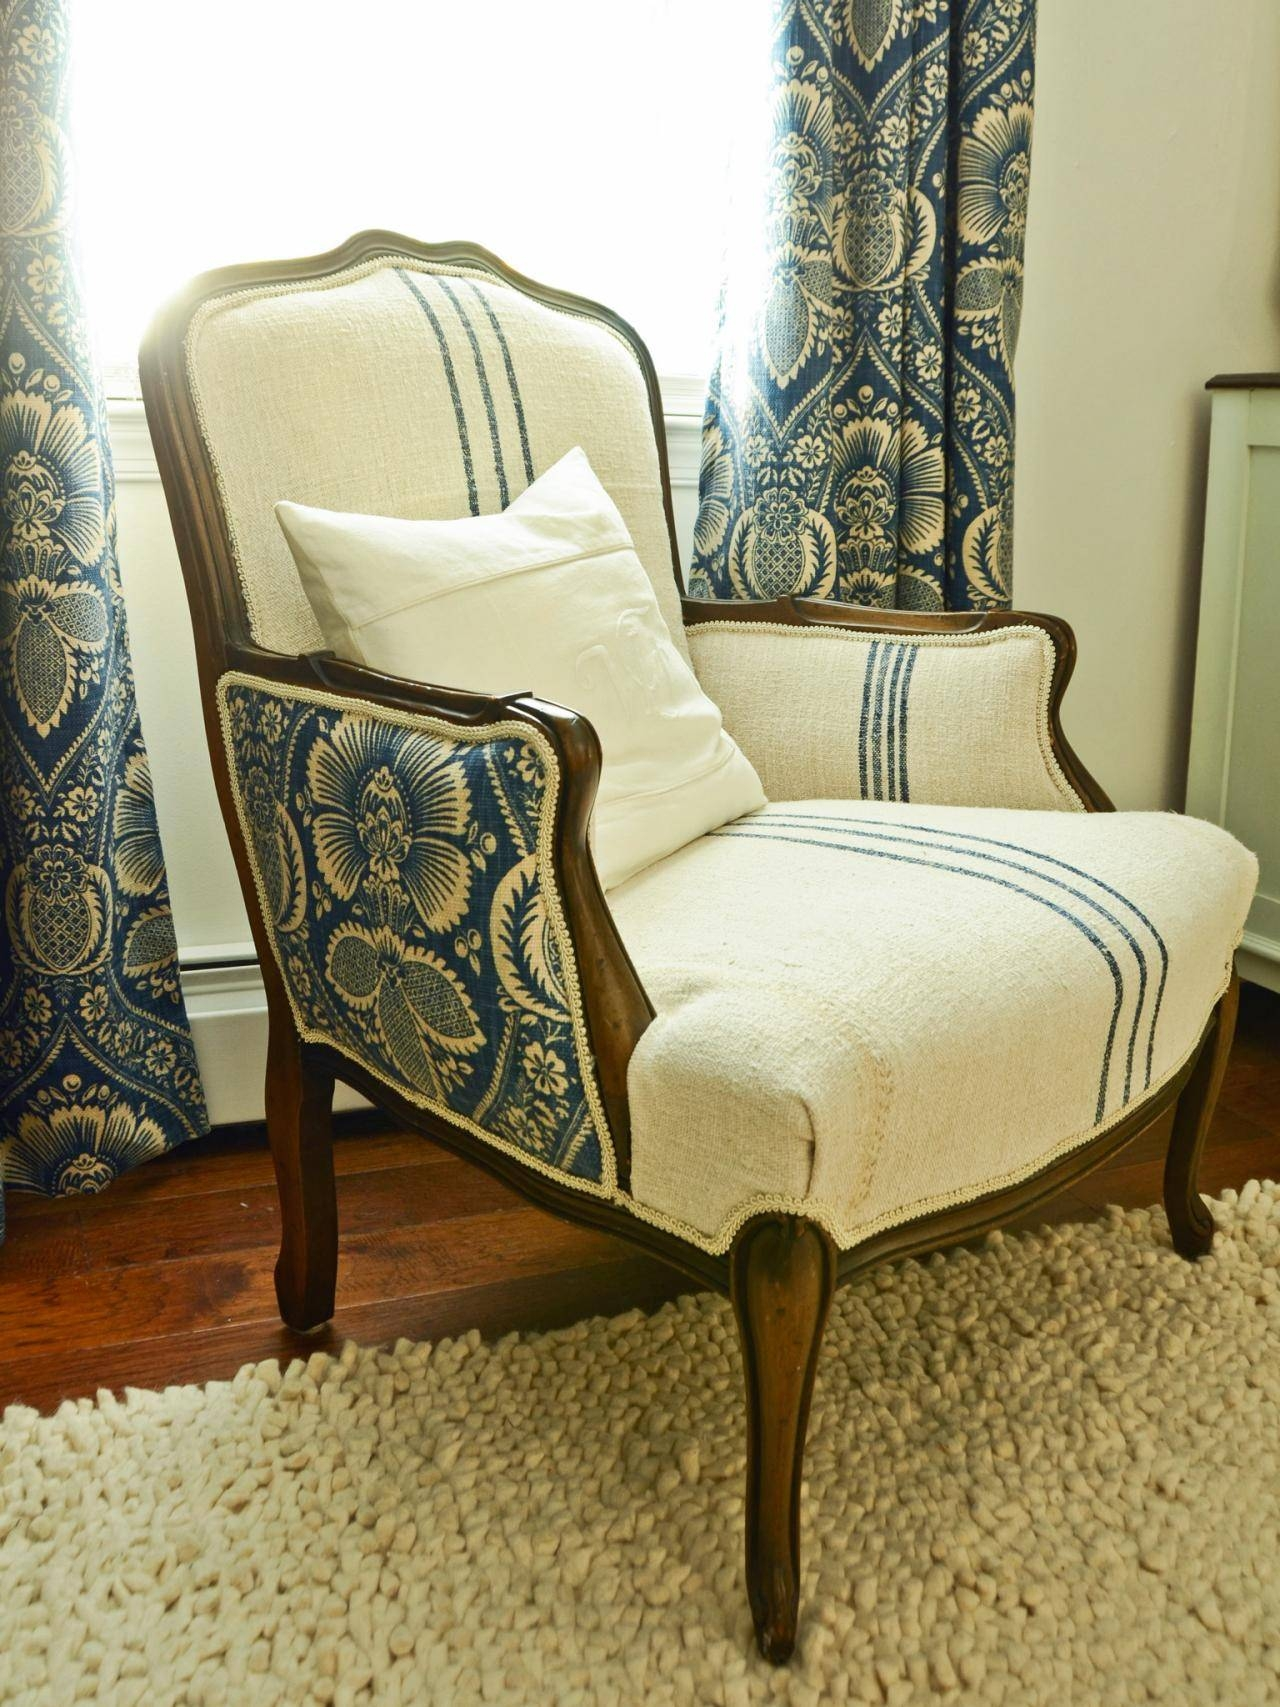 How To Reupholster An Arm Chair | Hgtv throughout Small Arm Chairs (Image 16 of 30)